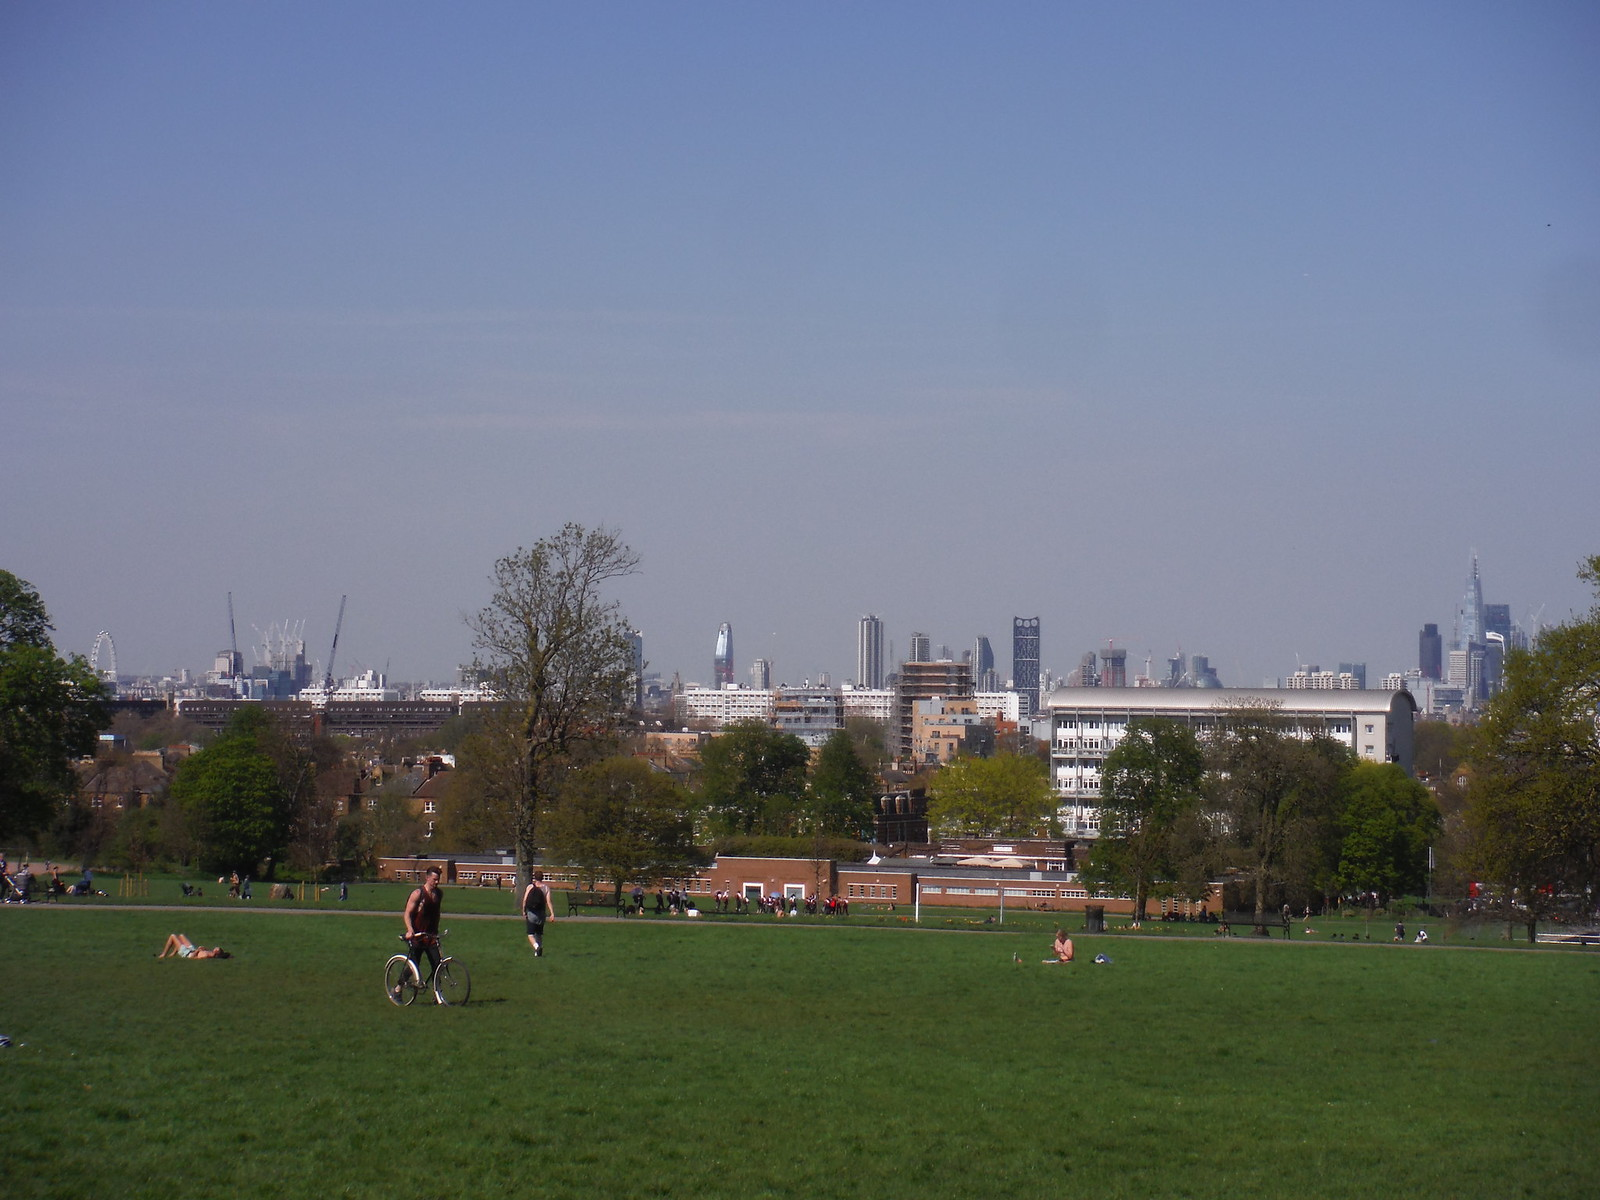 London Eye to The Shard, from Brockwell Park SWC Short Walk 39 - Brockwell Park (Herne Hill Circular or to Brixton)